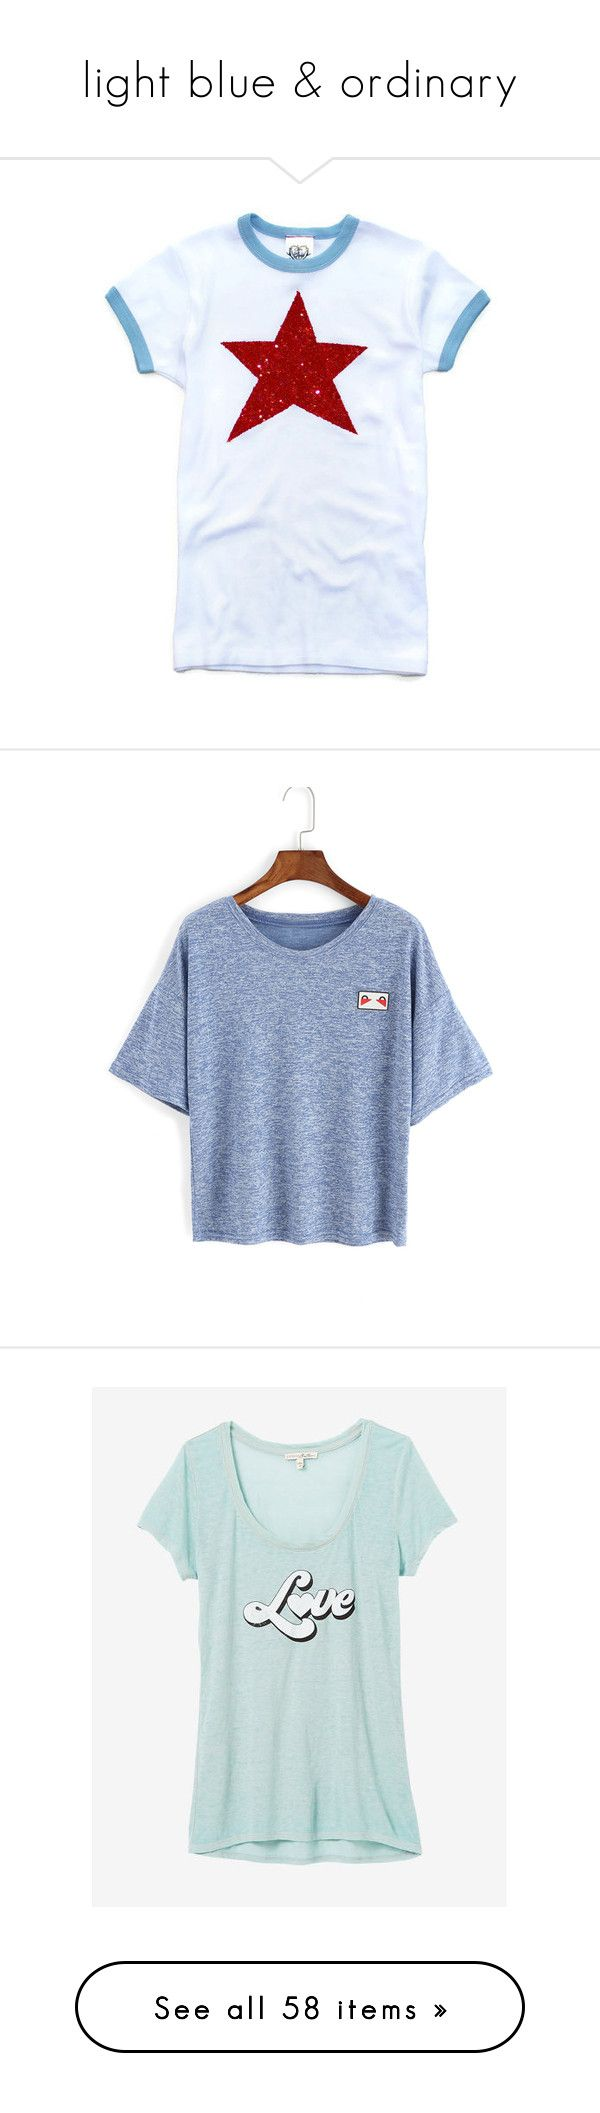 """""""light blue & ordinary"""" by chakayuko ❤ liked on Polyvore featuring tops, t-shirts, silver, women's clothing, americana t shirts, silver t shirt, sequin t shirt, blue and white checkered shirt, red white and blue shirts and blue"""